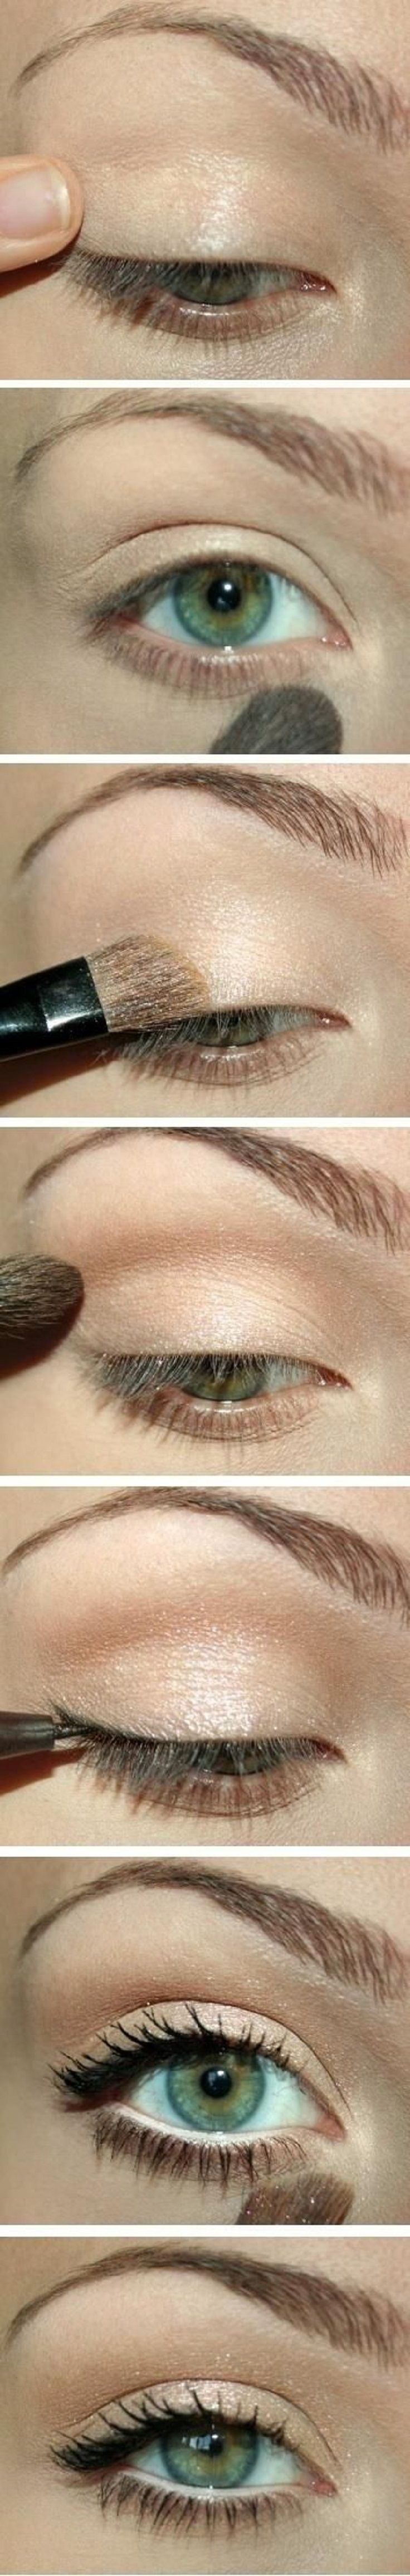 Maquillage Yeux  Top 10 Tutorials for Natural Eye Make-Up